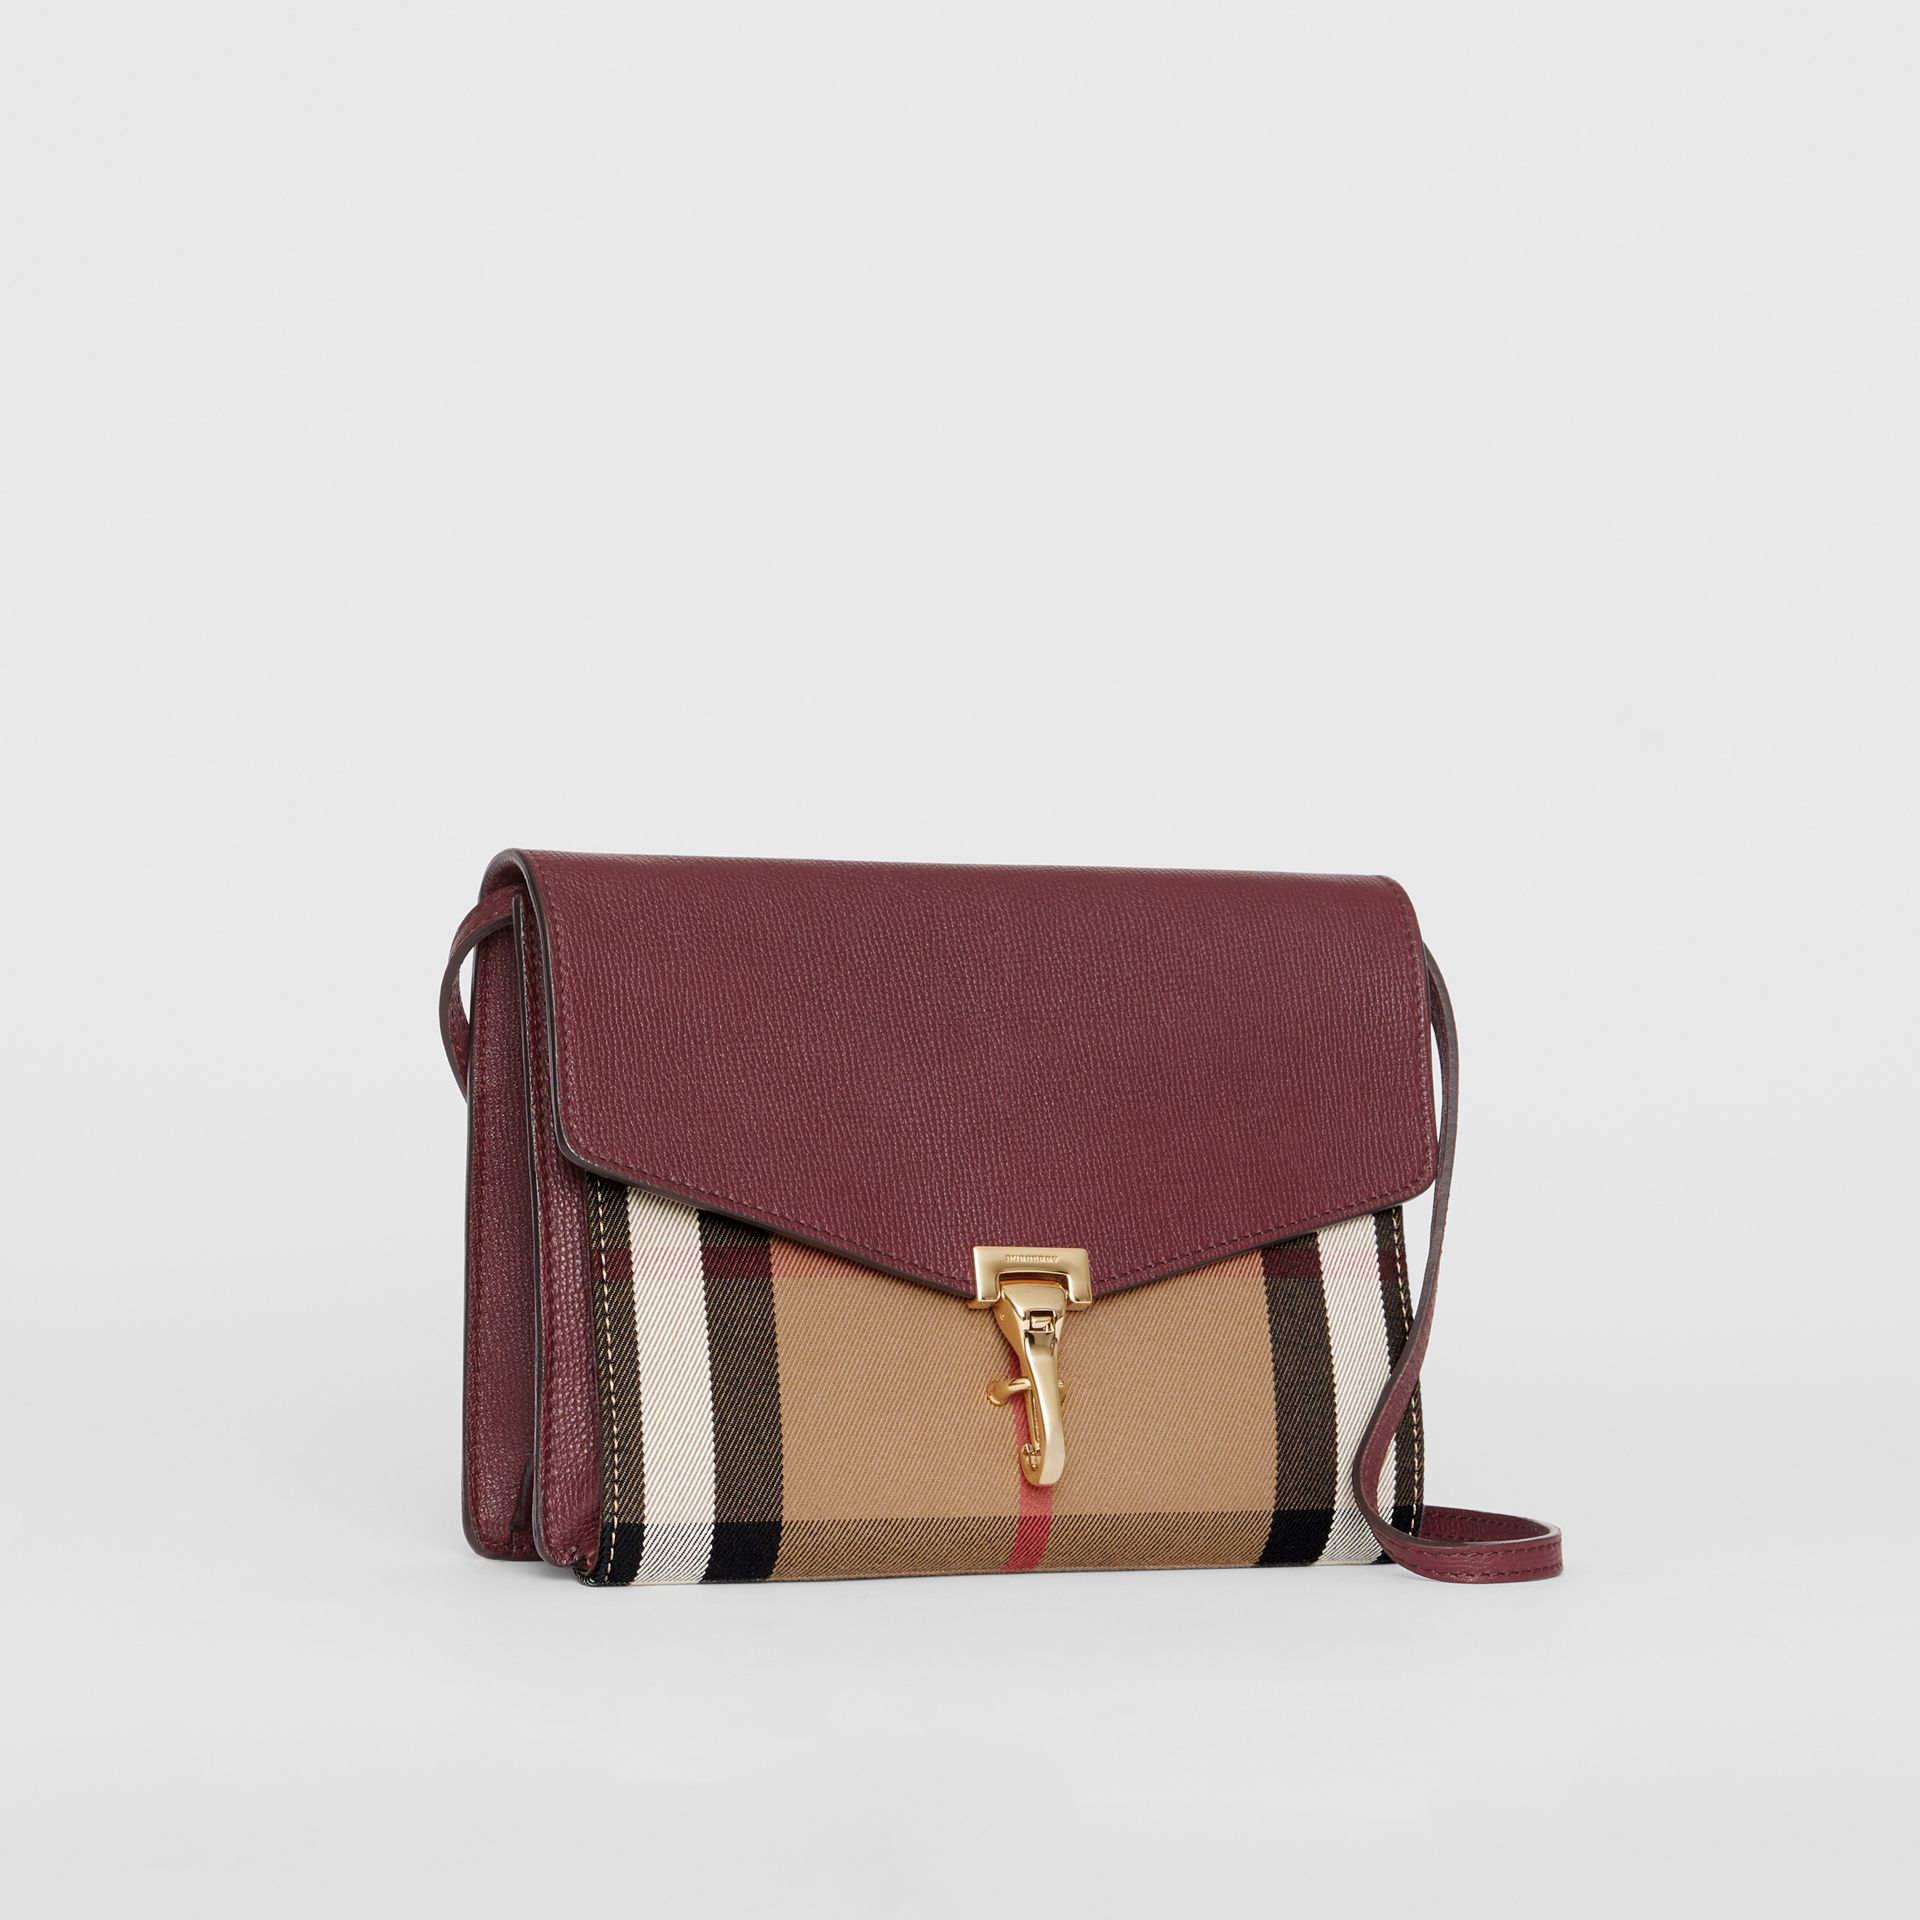 Small Leather and House Check Crossbody Bag in Mahogany Red - Women | Burberry Singapore - gallery image 6